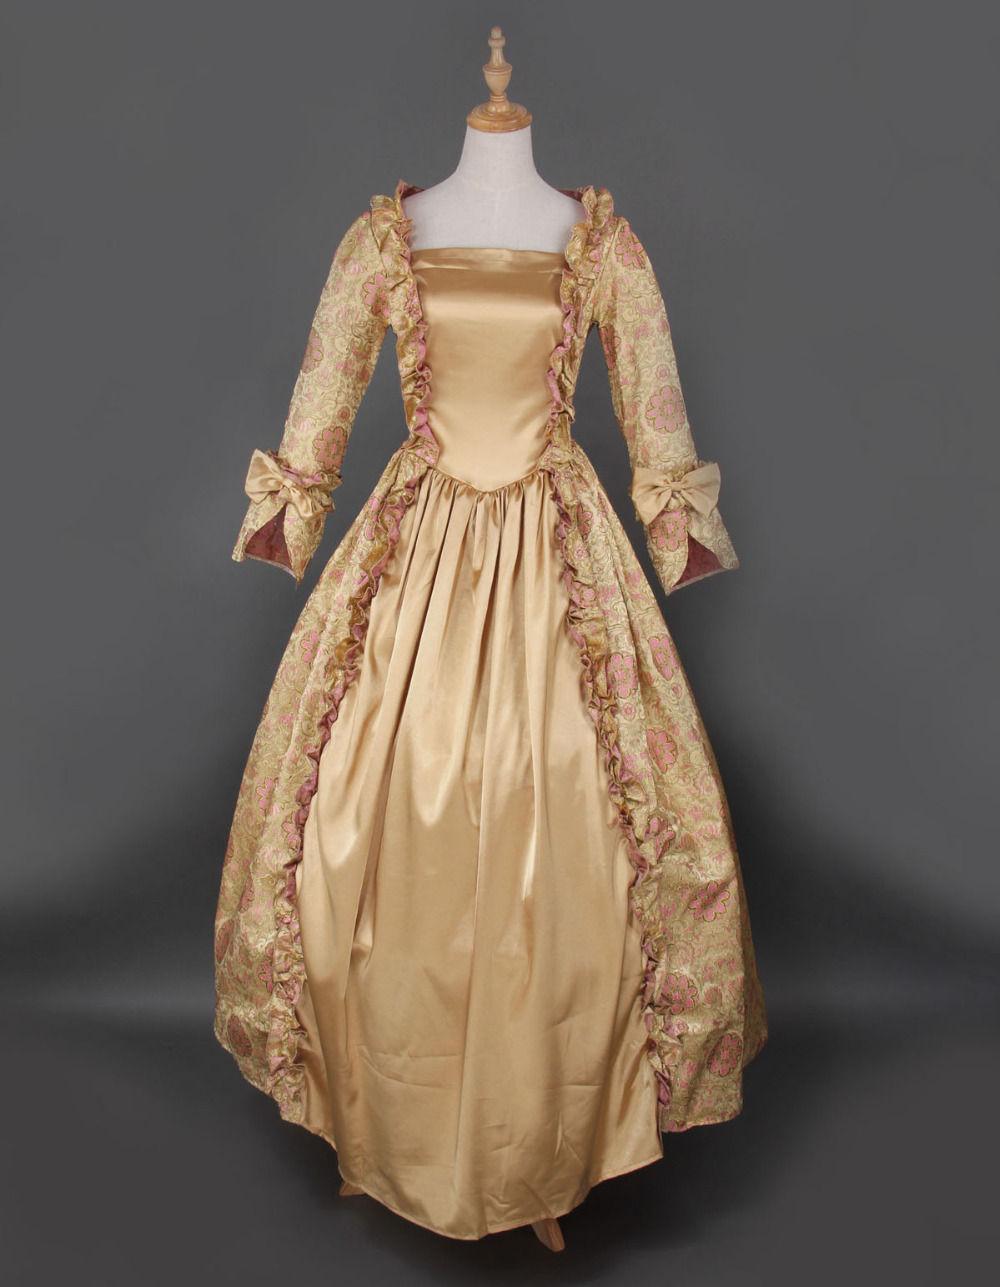 Famous Short Gown 18Th Century Illustration - Ball Gown Wedding ...